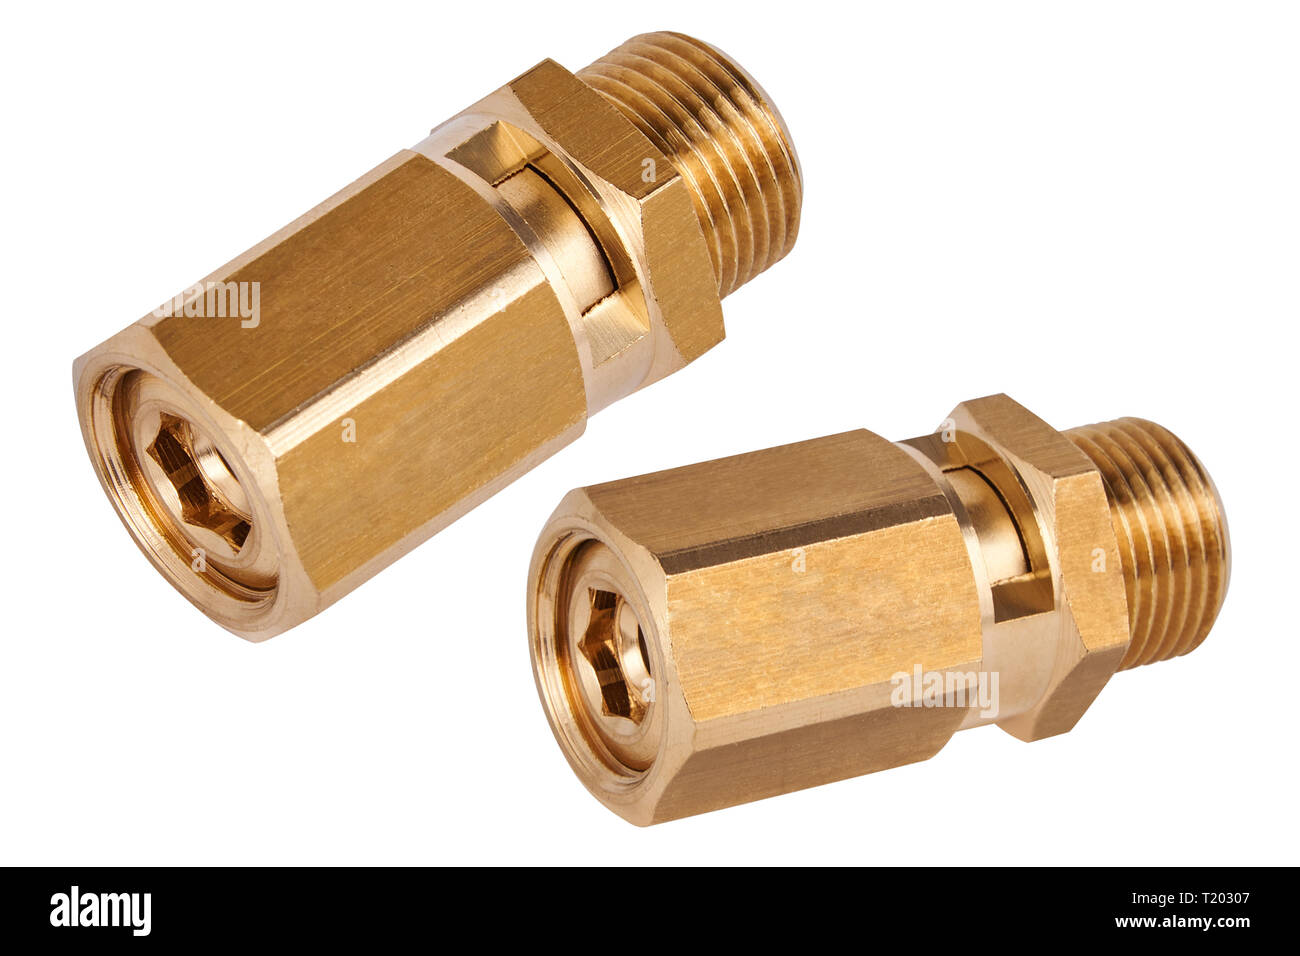 emergency valve. Spare parts for professional coffeee machines. Isolated. Barista equipment - Stock Image